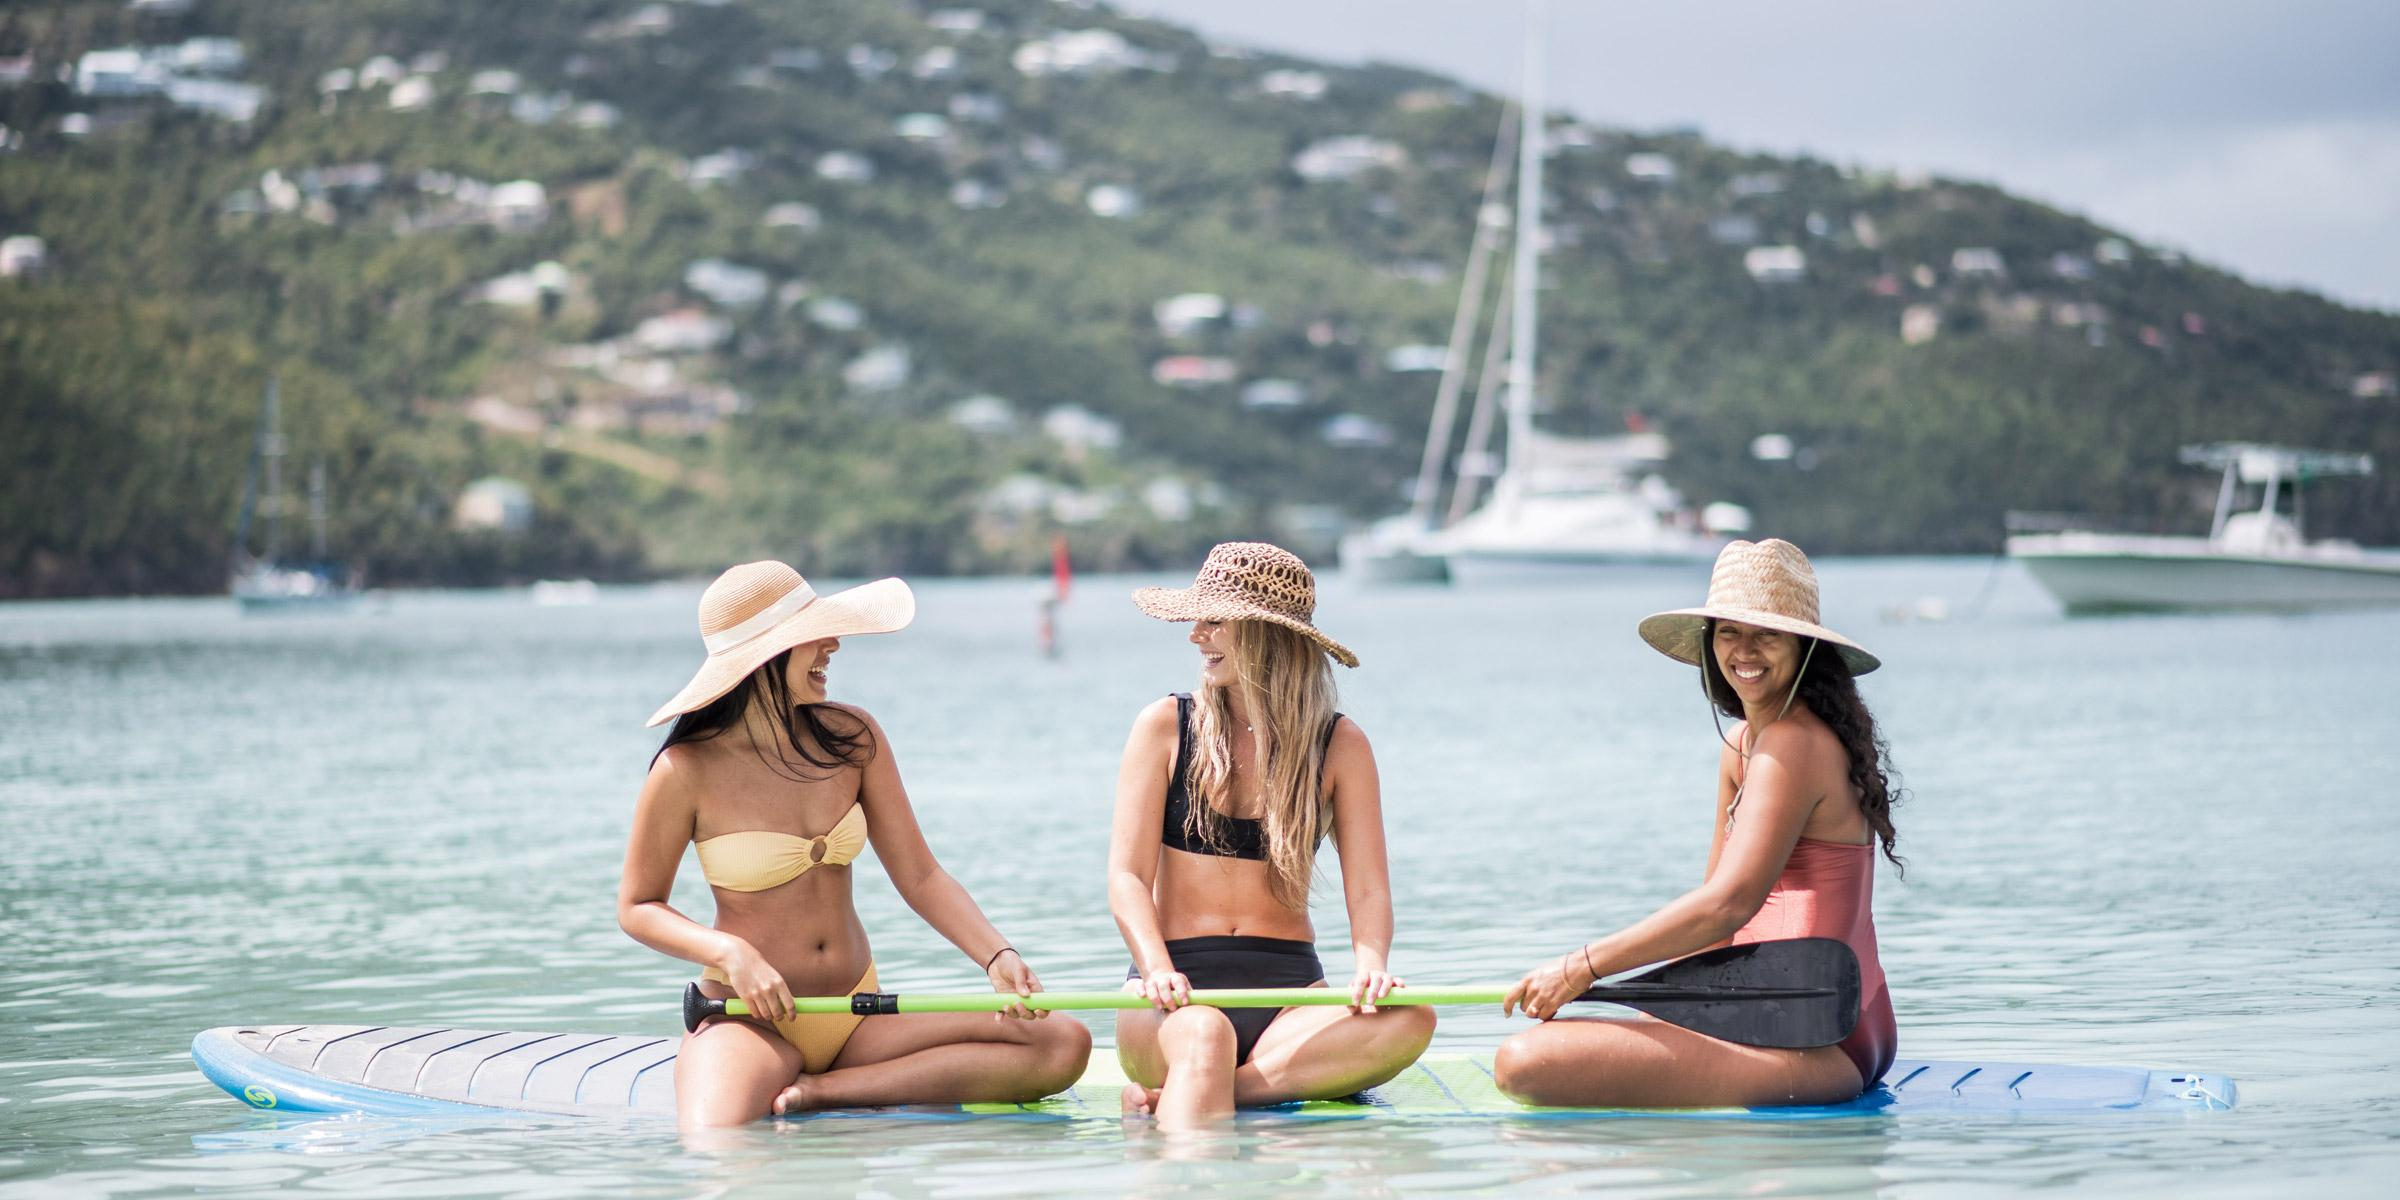 Women with paddleboard at Magen's Bay on St. Thomas, U.S. Virgin Islands